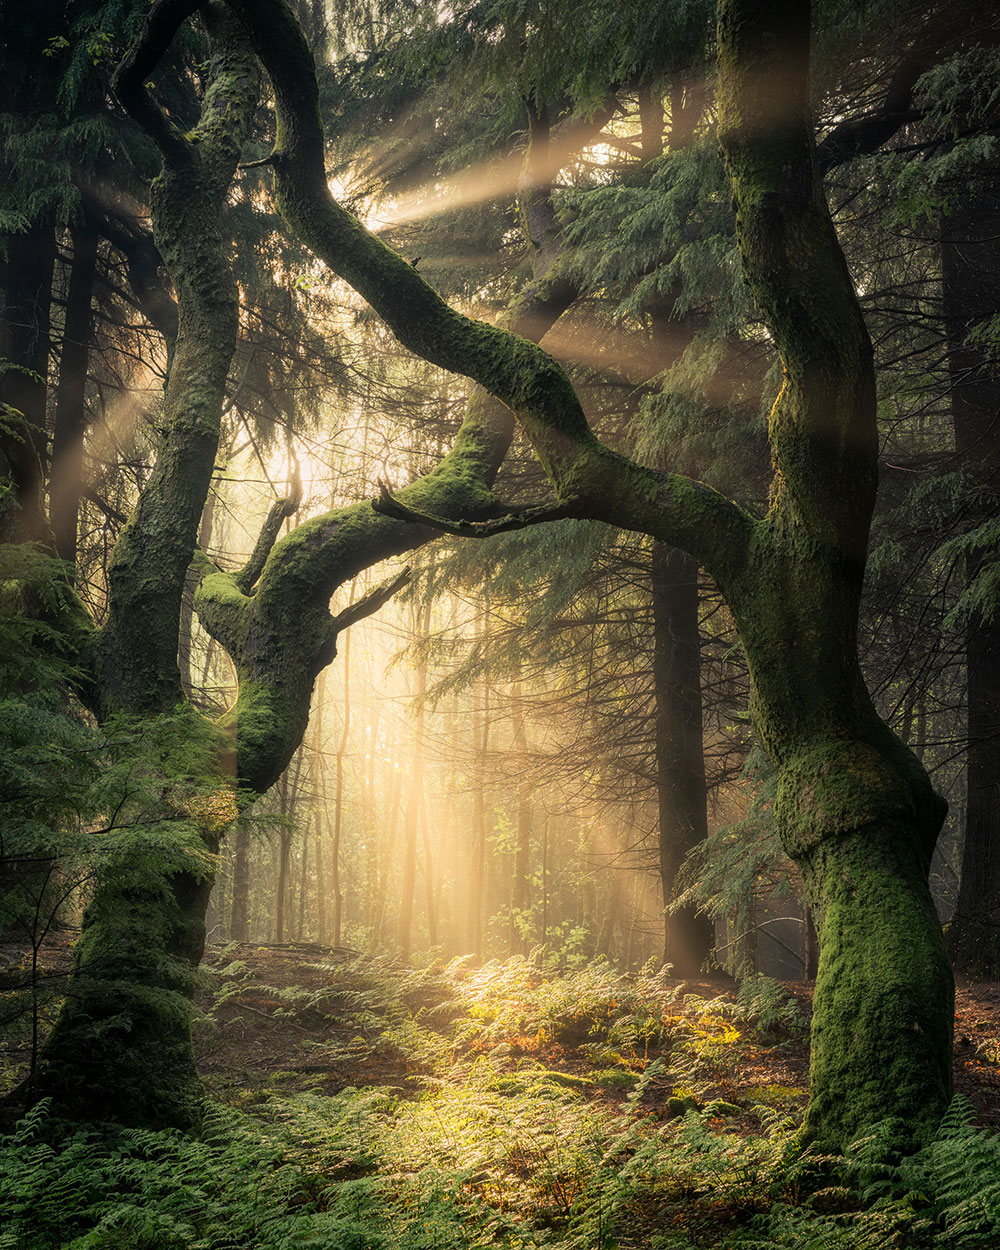 Photo Insight with Simon Baxter: Guardians of the Forest